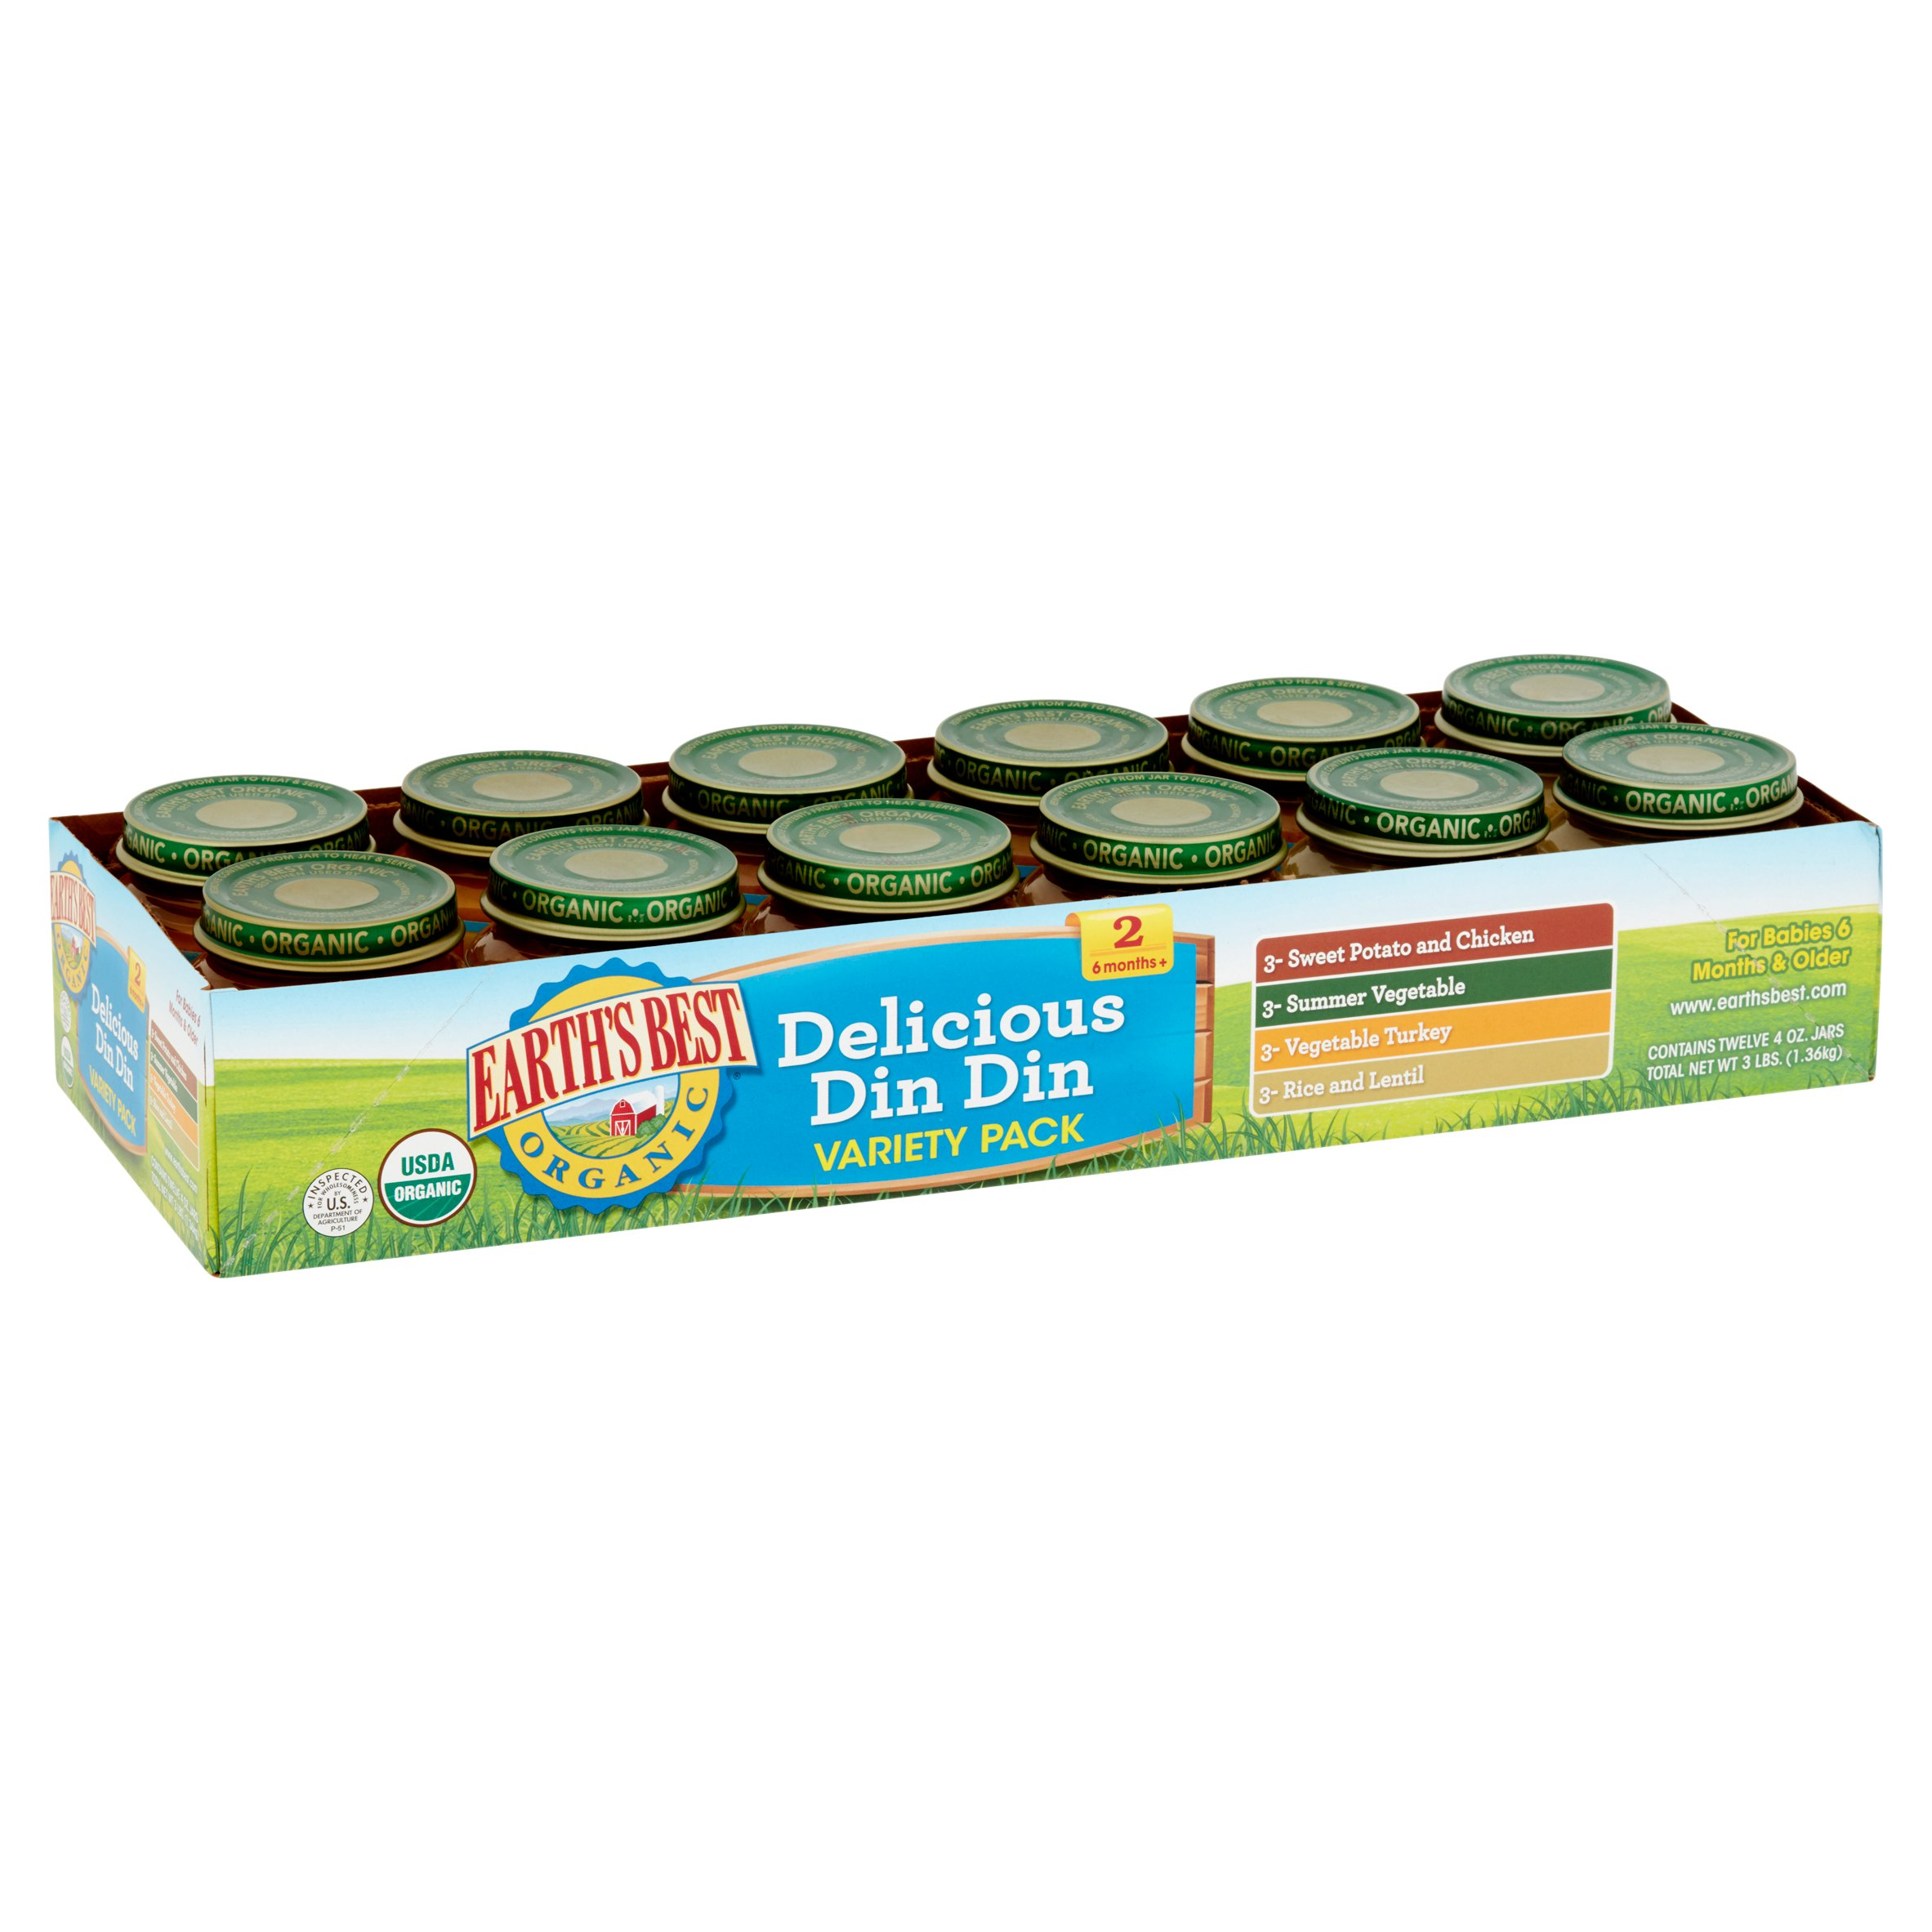 Earth's Best Organic Baby Food Delicious Din Din Variety Pack Baby Food, 4 oz, 12 Pack